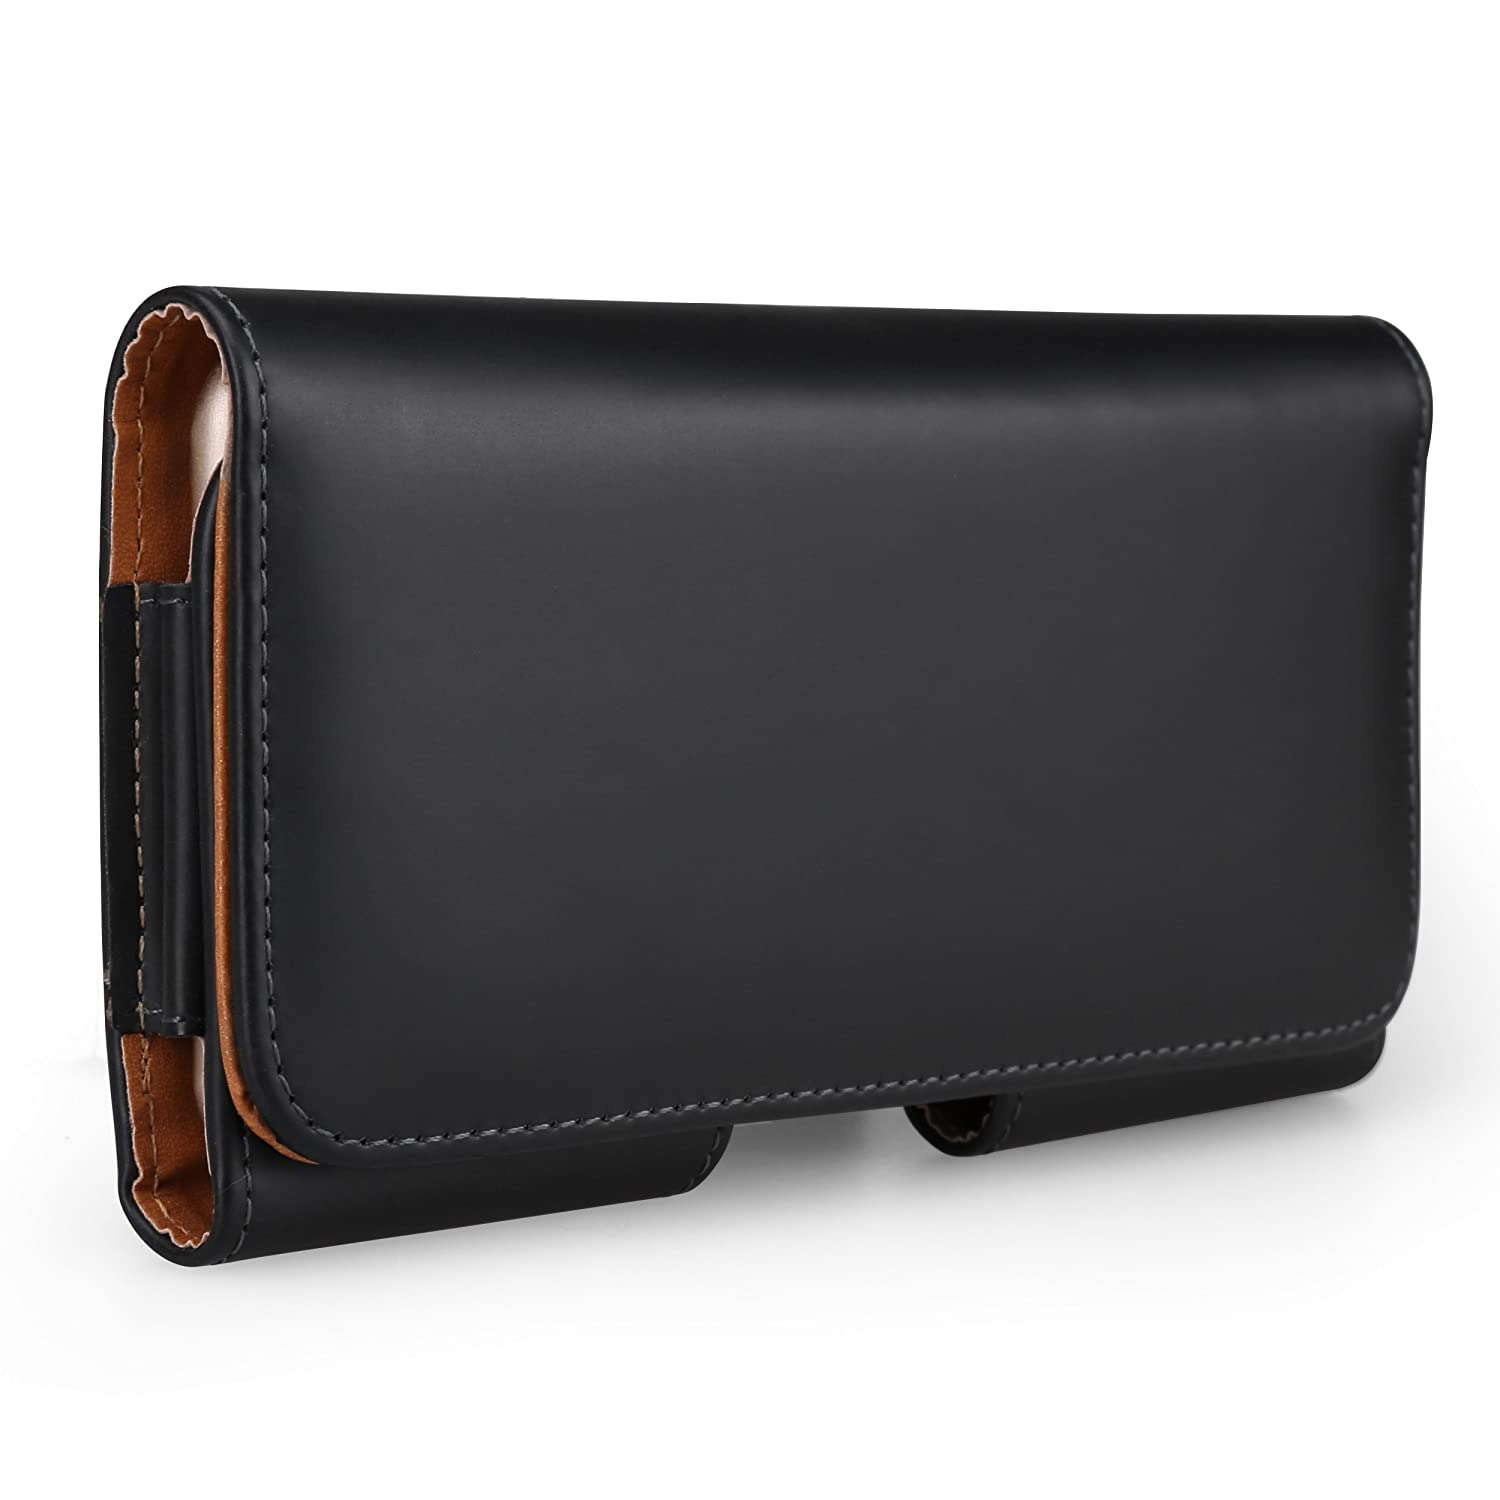 Black PU Leather Horizontal Belt Clip Wallet Case Holster for Apple iPhone X/LG Zone 4/Aristo 2/Aristo/Tribute Dynasty/K20 V/Phoenix 3/Fortune/K4/K8/K10